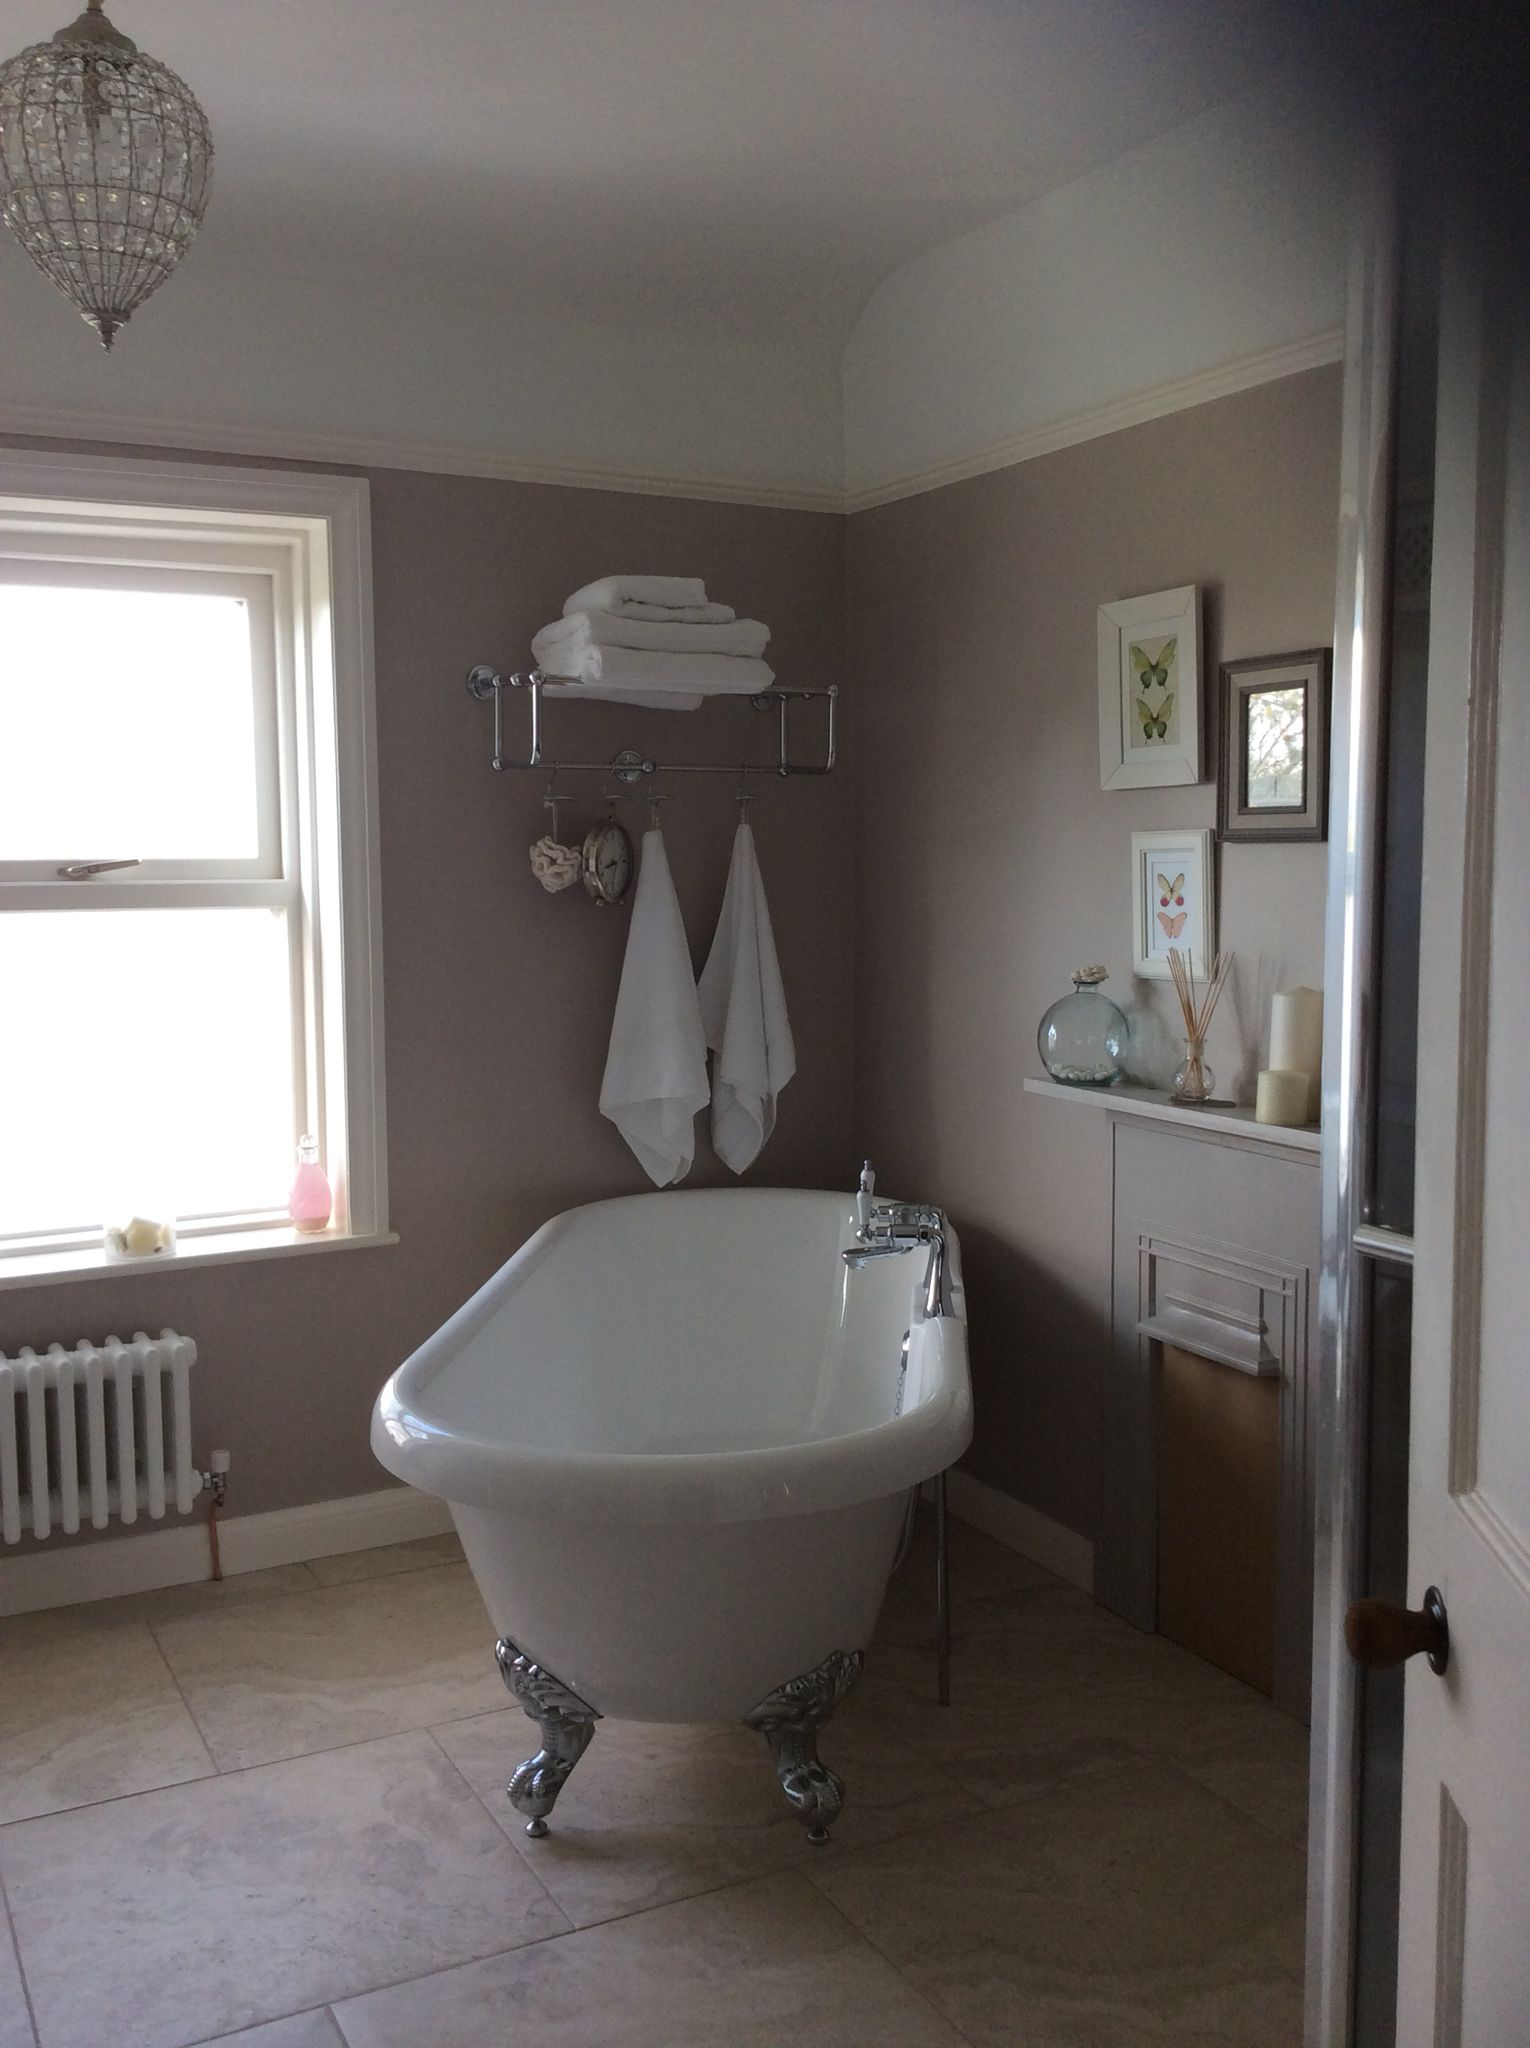 Roll top bath in modern bathroom with walls painted in